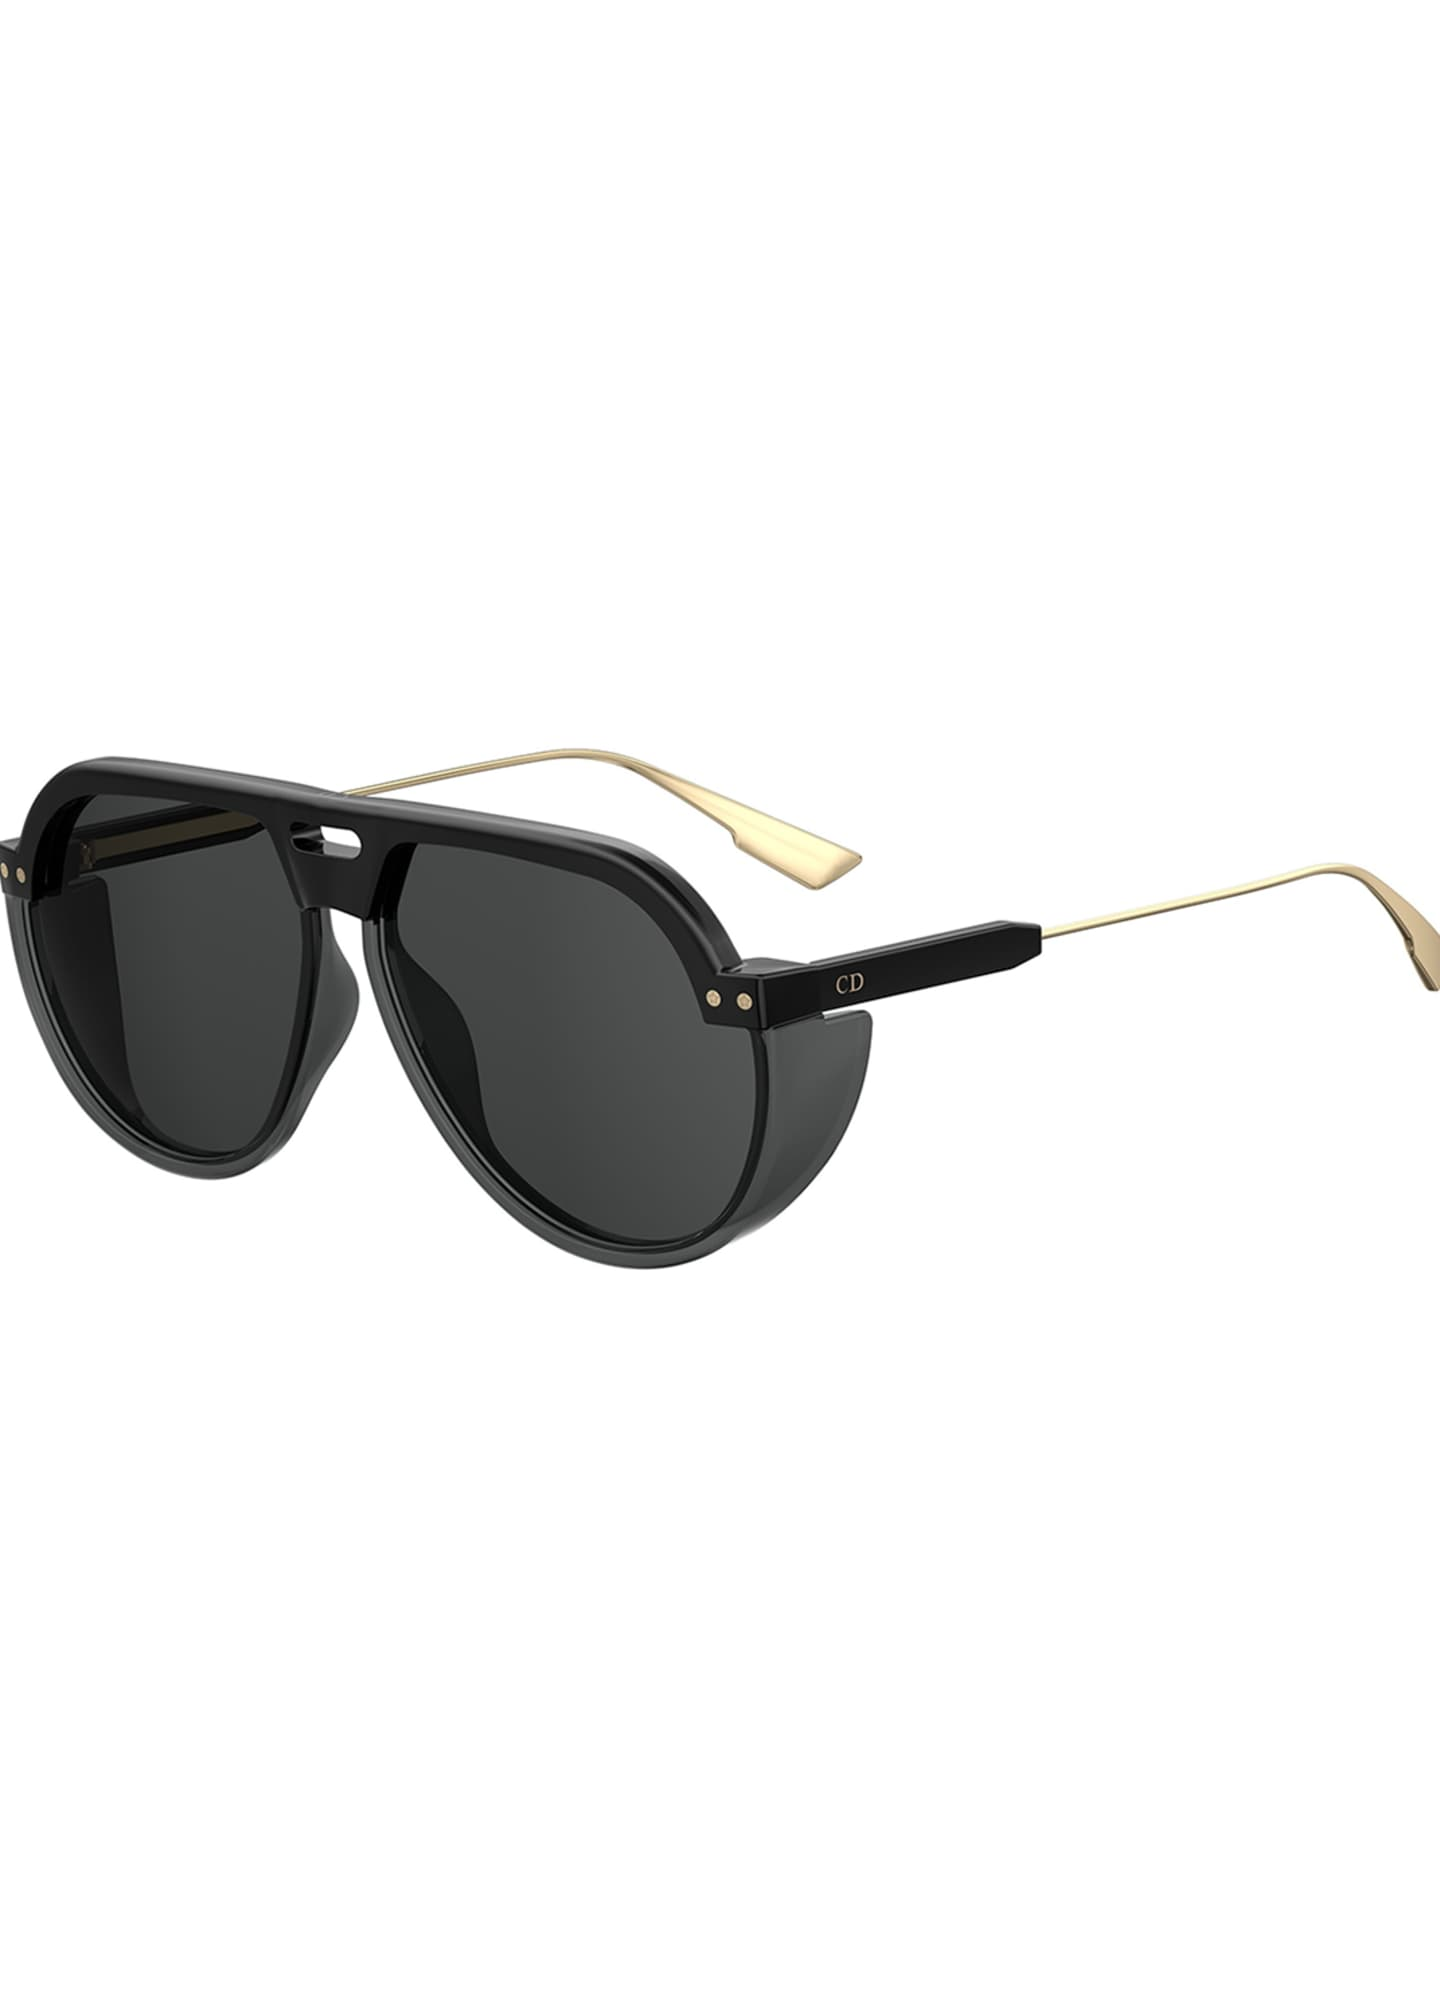 DiorClub3 Aviator Sunglasses w/ Side Blinders